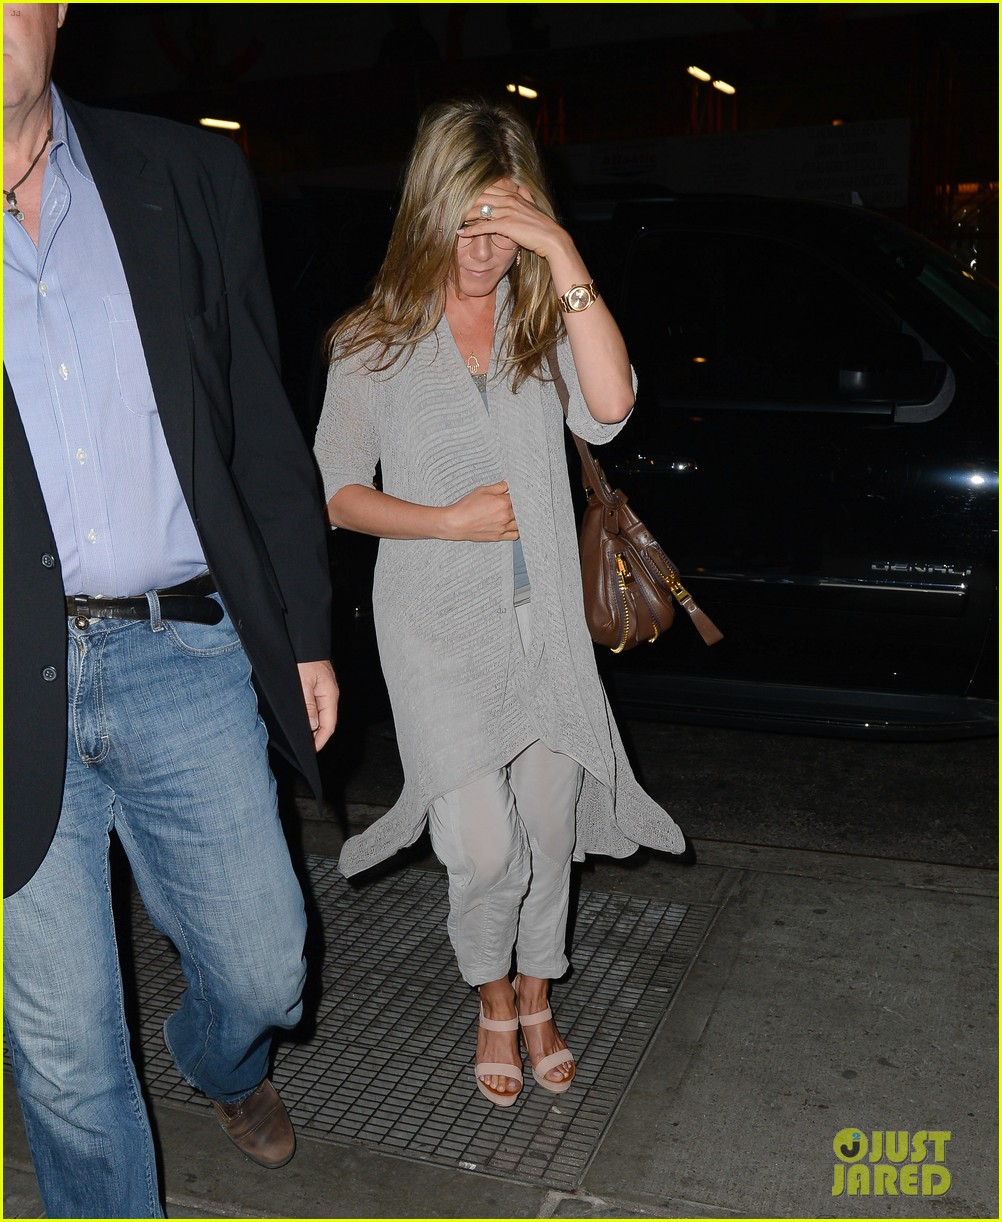 jennifer aniston attends bette midler play ill eat you last 03